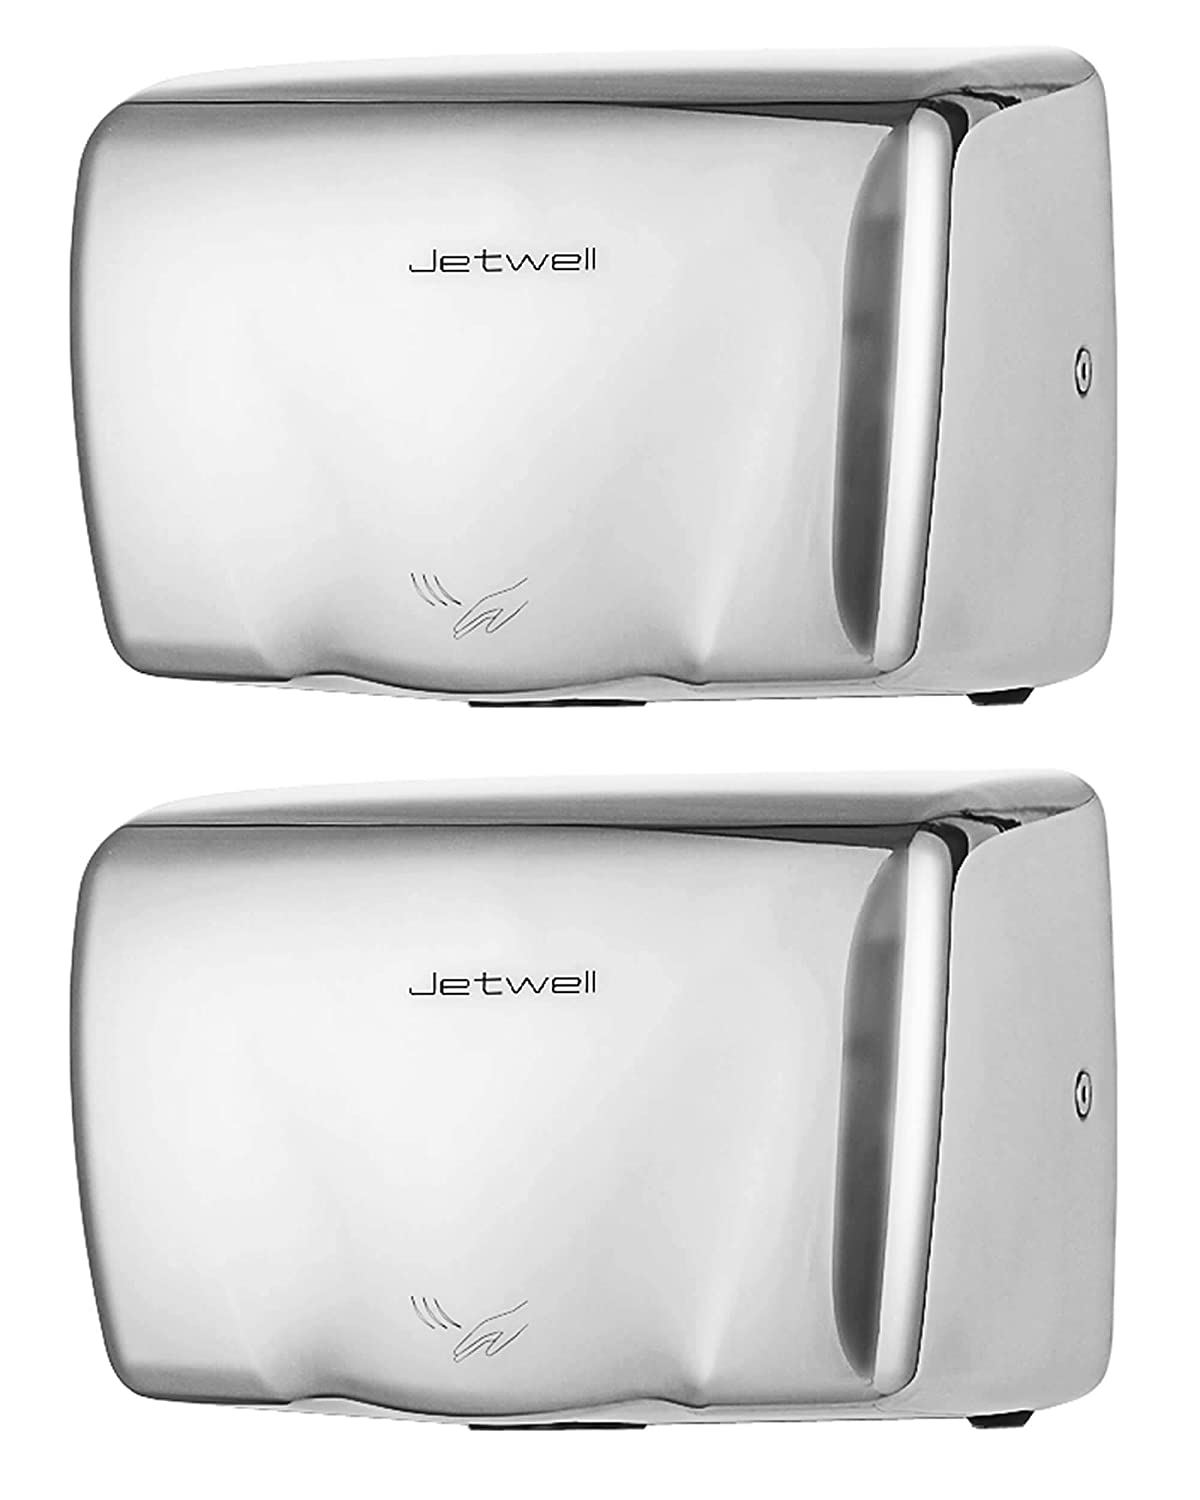 Jetwell (2 Pack) High Speed Commercial Automatic Hand Dryer - Heavy Duty Stainless Steel - Hot Air Hand Blower (Polished Stainless Steel)